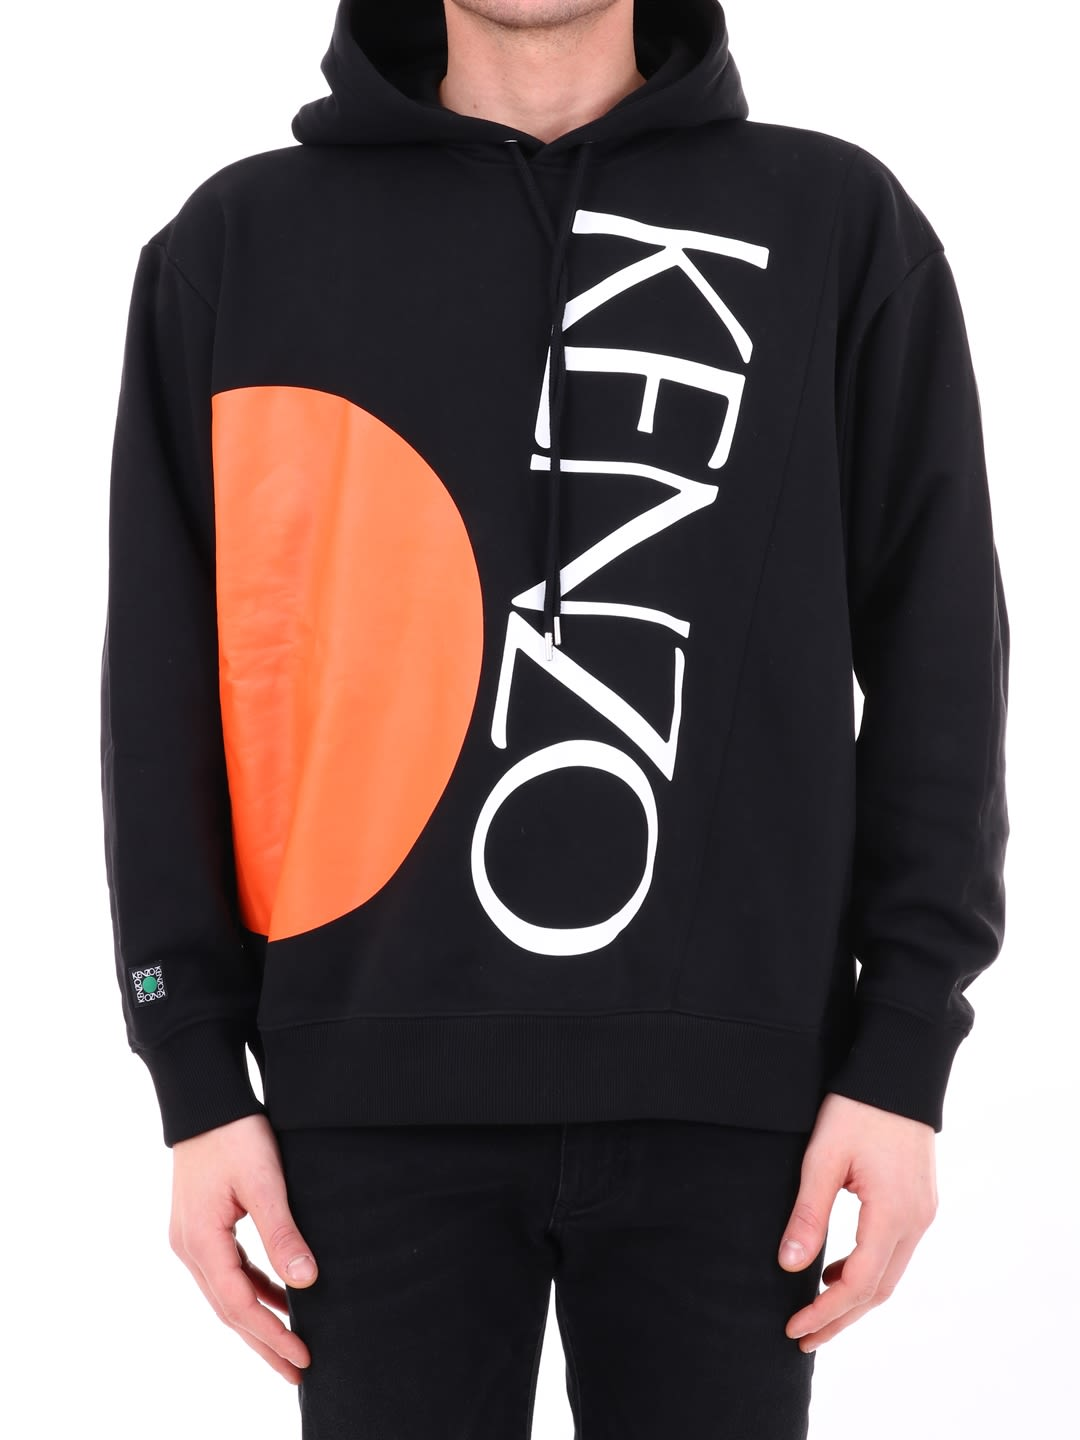 408e14a89 Kenzo Kenzo Black Hooded Sweatshirt - Black - 10812957 | italist